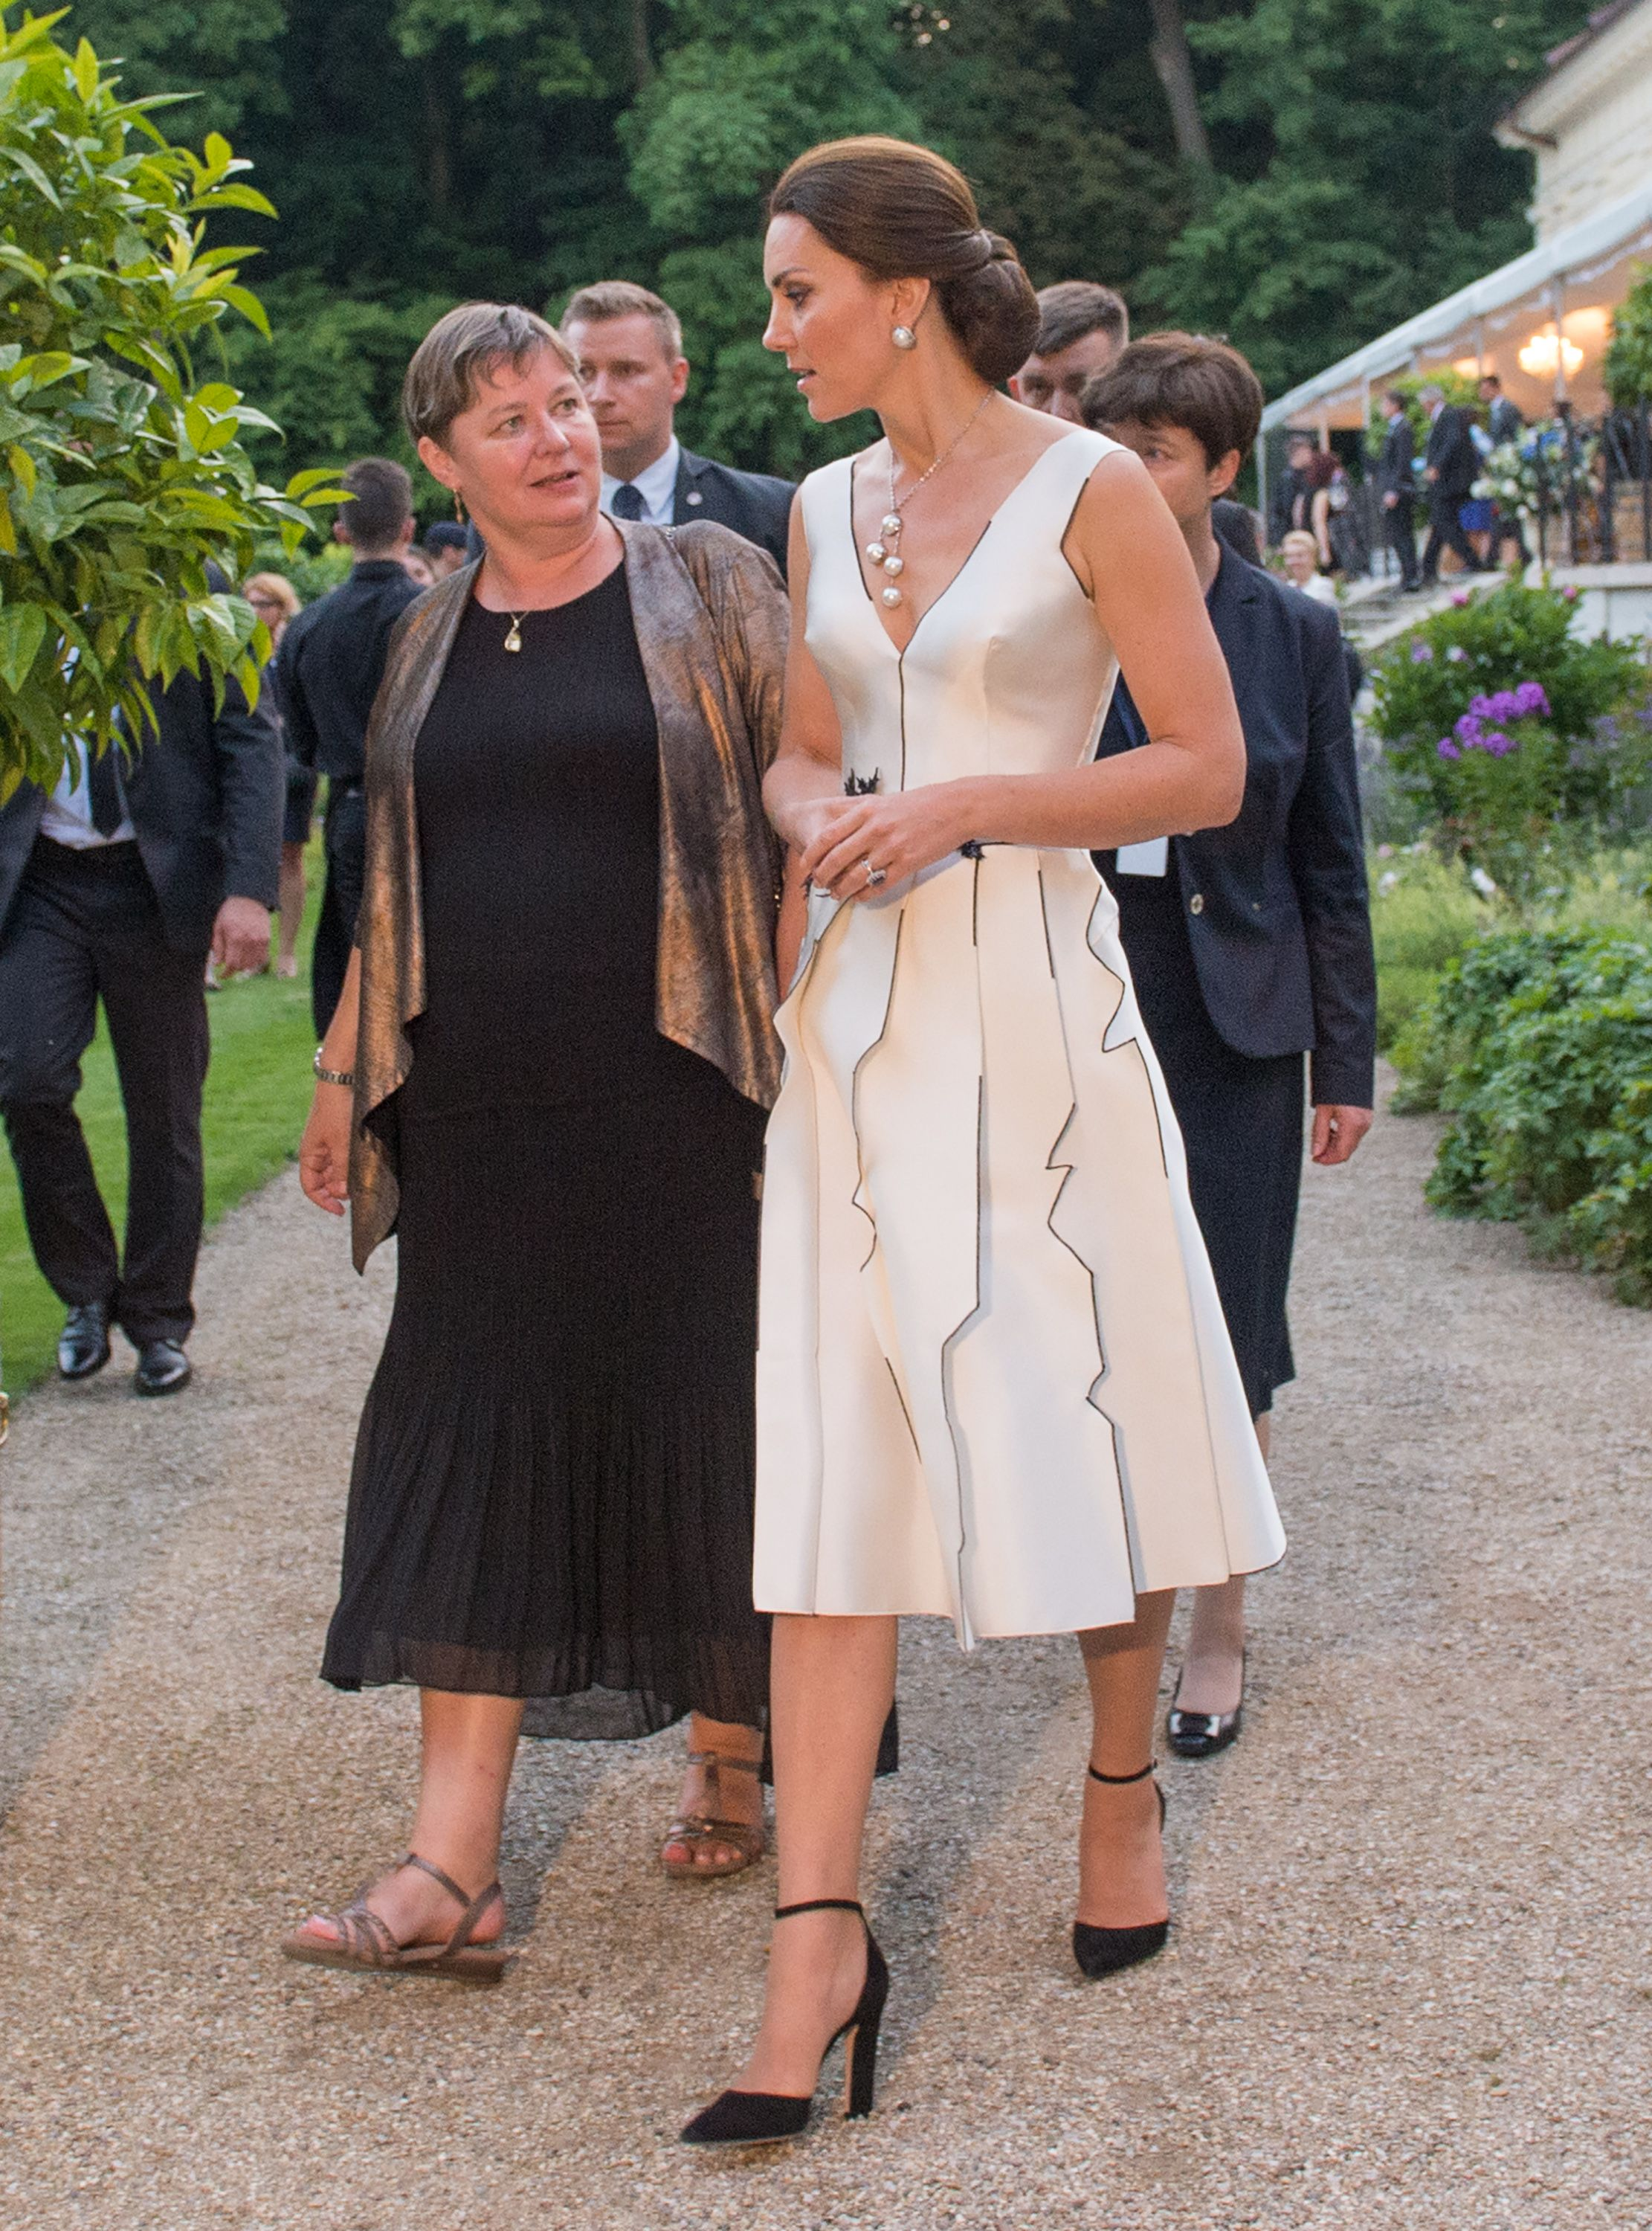 Shop Now Gianvito Rossi D'Orsay Sandals, $795 Kate swapped her go-to pumps for a pair of Gianvito Rossi D'Orsay Sandals for the Queen's Birthday Garden Party during an official visit to Poland and Germany in July 2017.